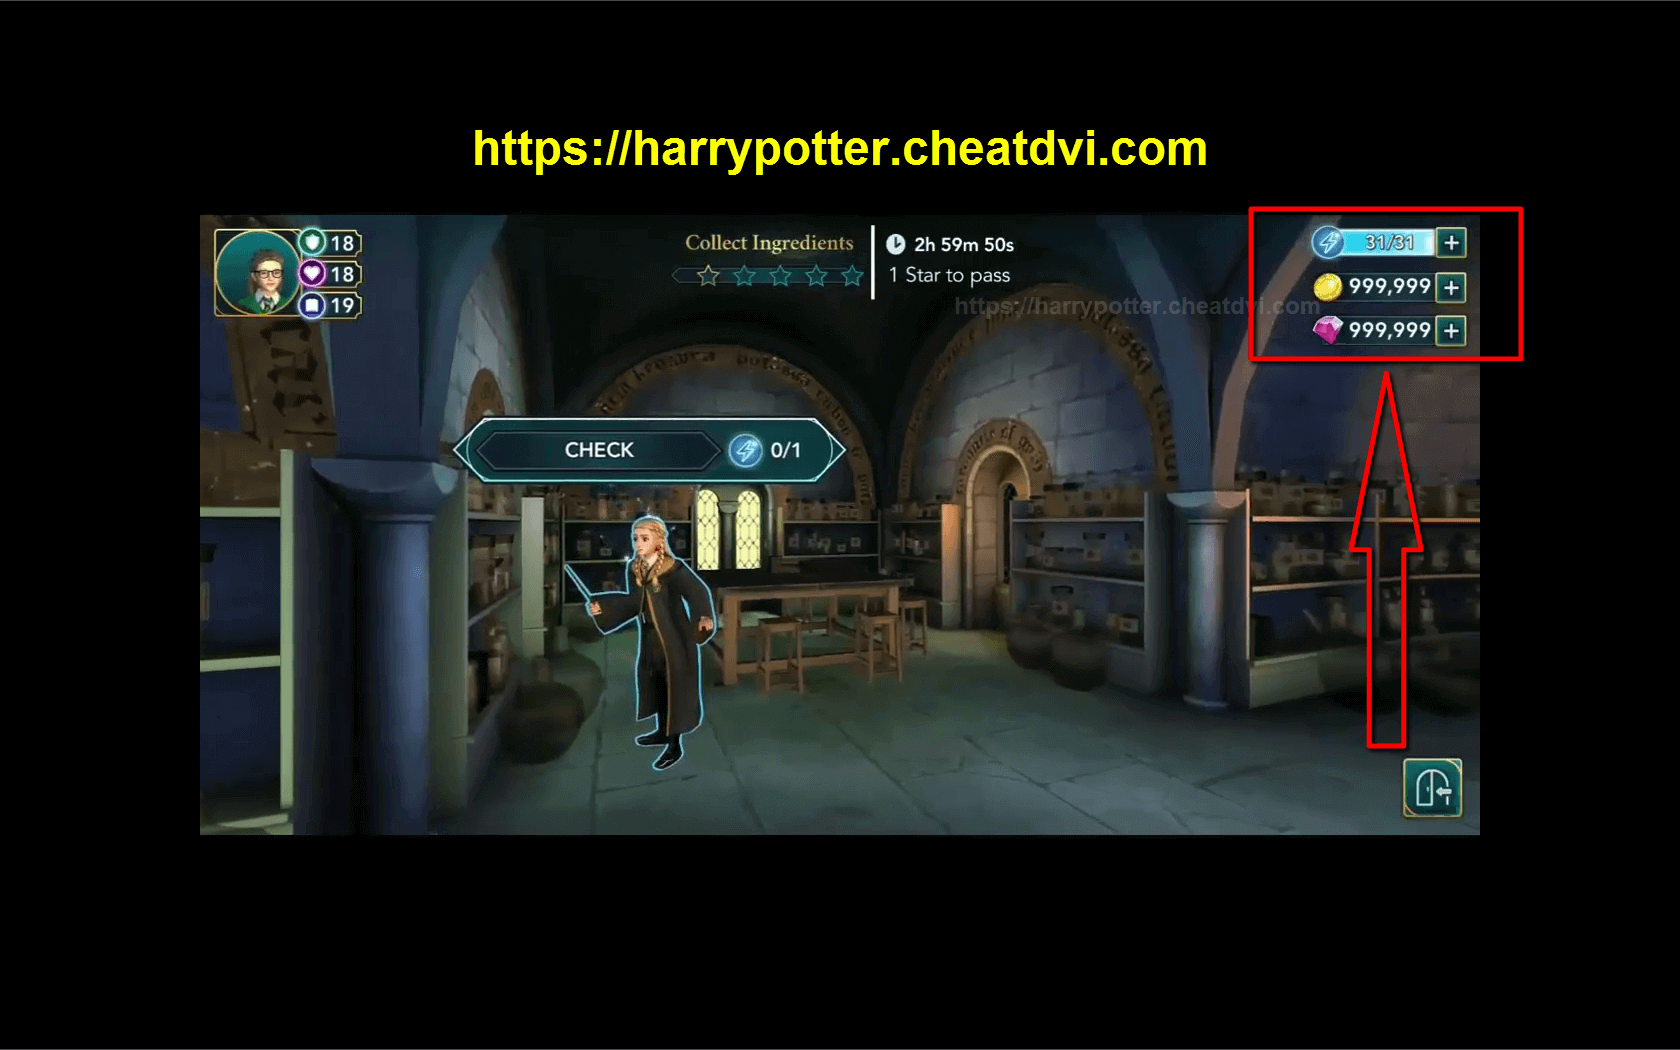 Harry Potter Hogwarts Mystery Hack Get Unlimited Gems And Coins Video Proof Included Hogwarts Mystery Harry Potter Hogwarts Hogwarts